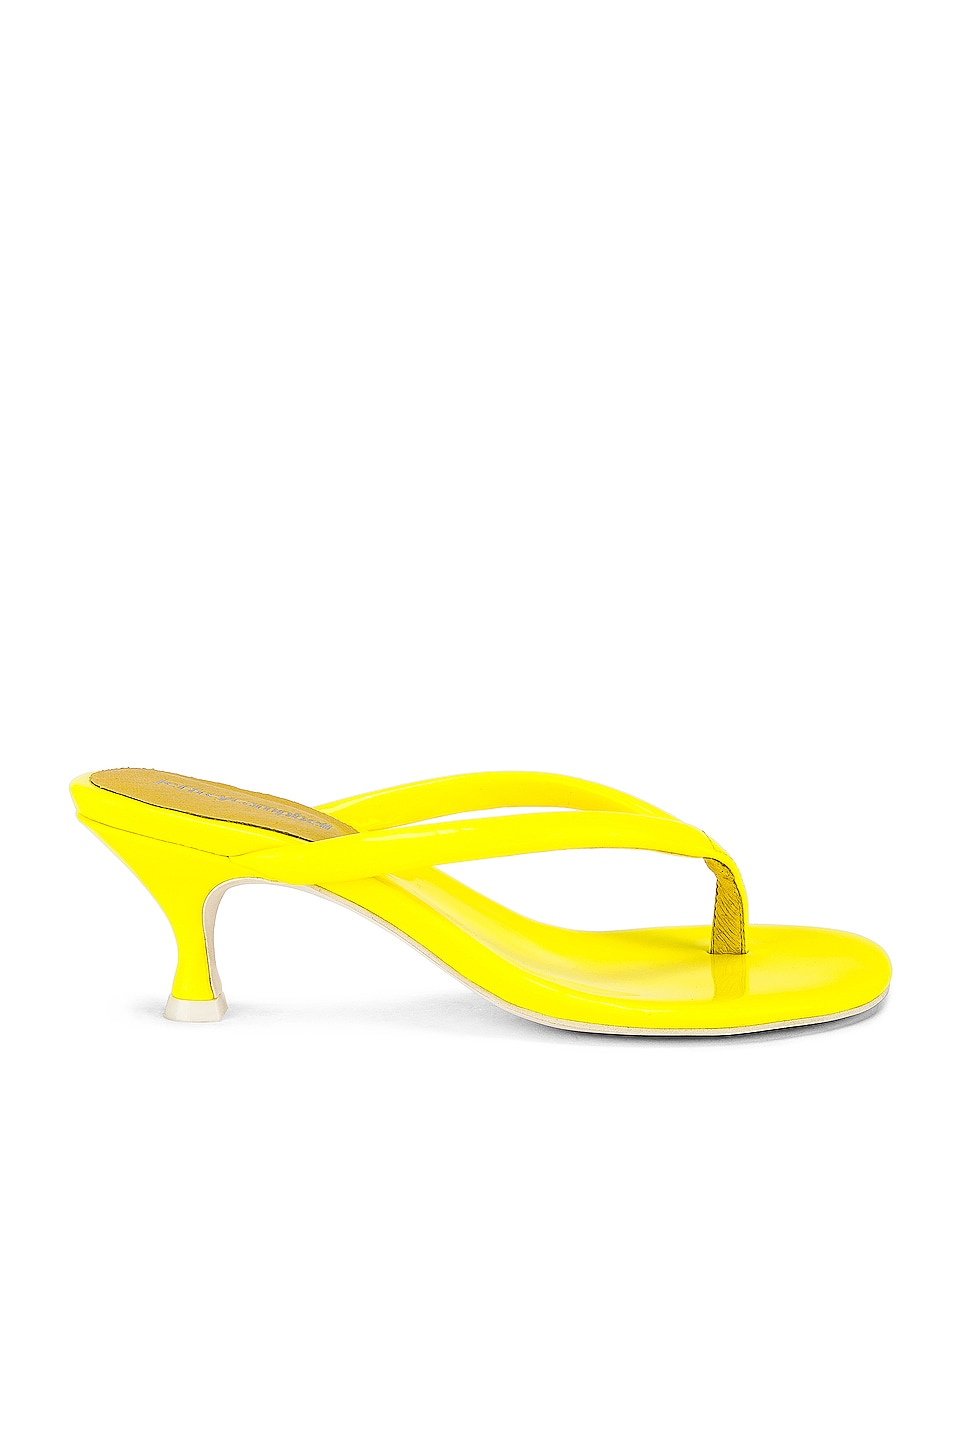 Jeffrey Campbell Brink Sandal in Yellow Neon